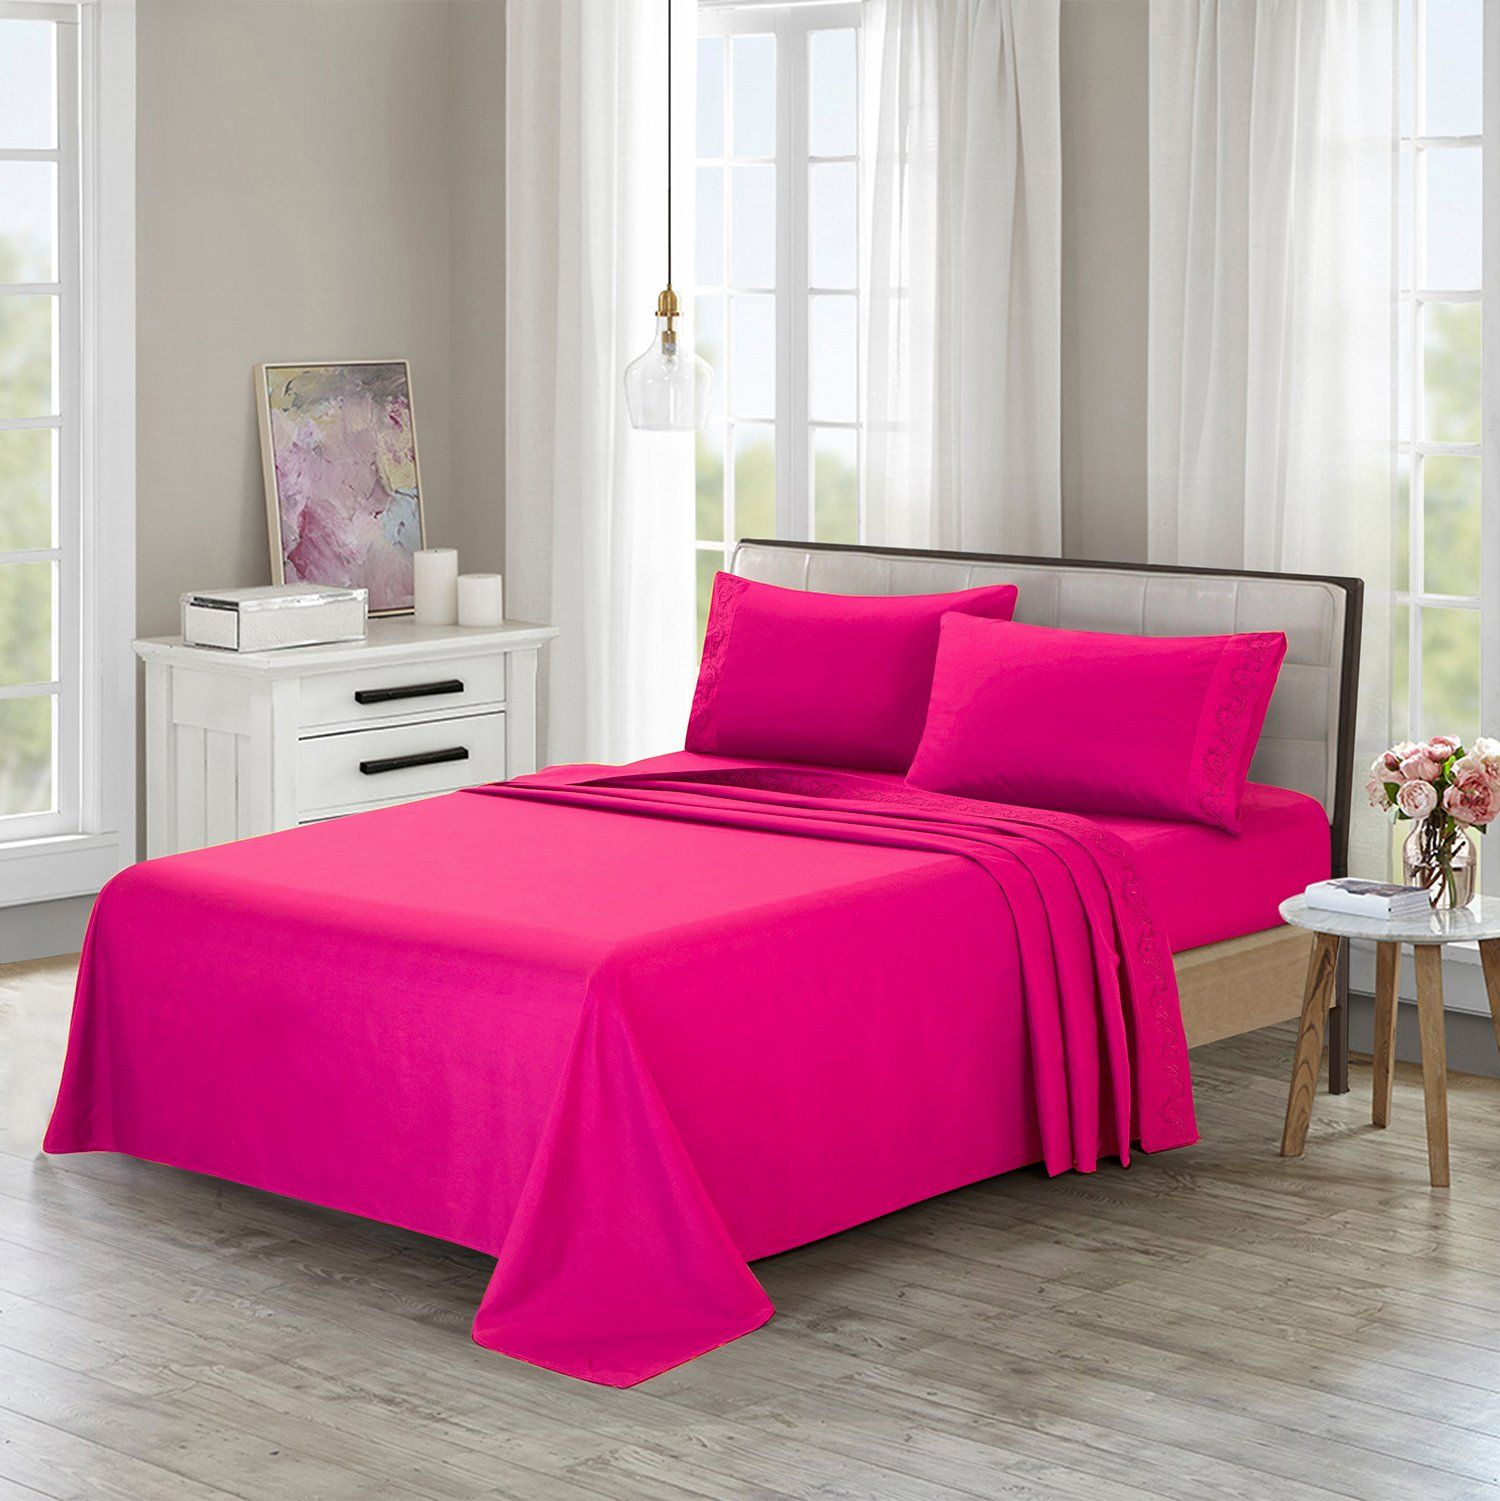 HollyHOME Microfiber Bed Sheet Set with Embroidered